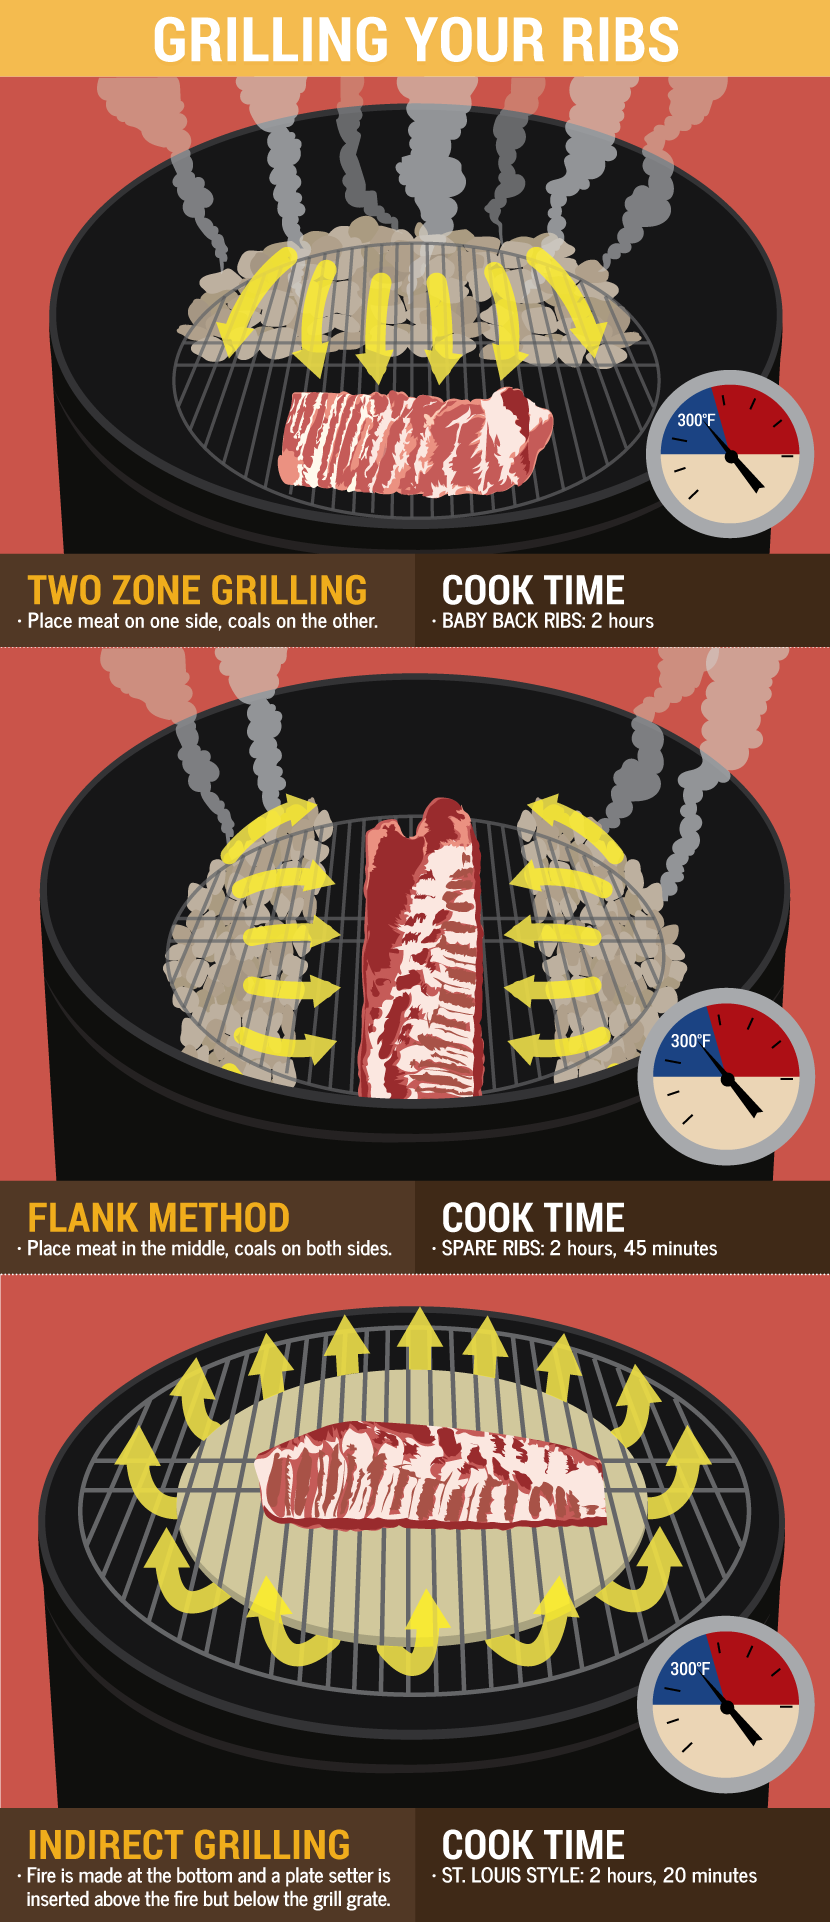 Learn How To Grill The Perfect Ribs Ribs On Grill Smoked Food Recipes Barbecue Ribs